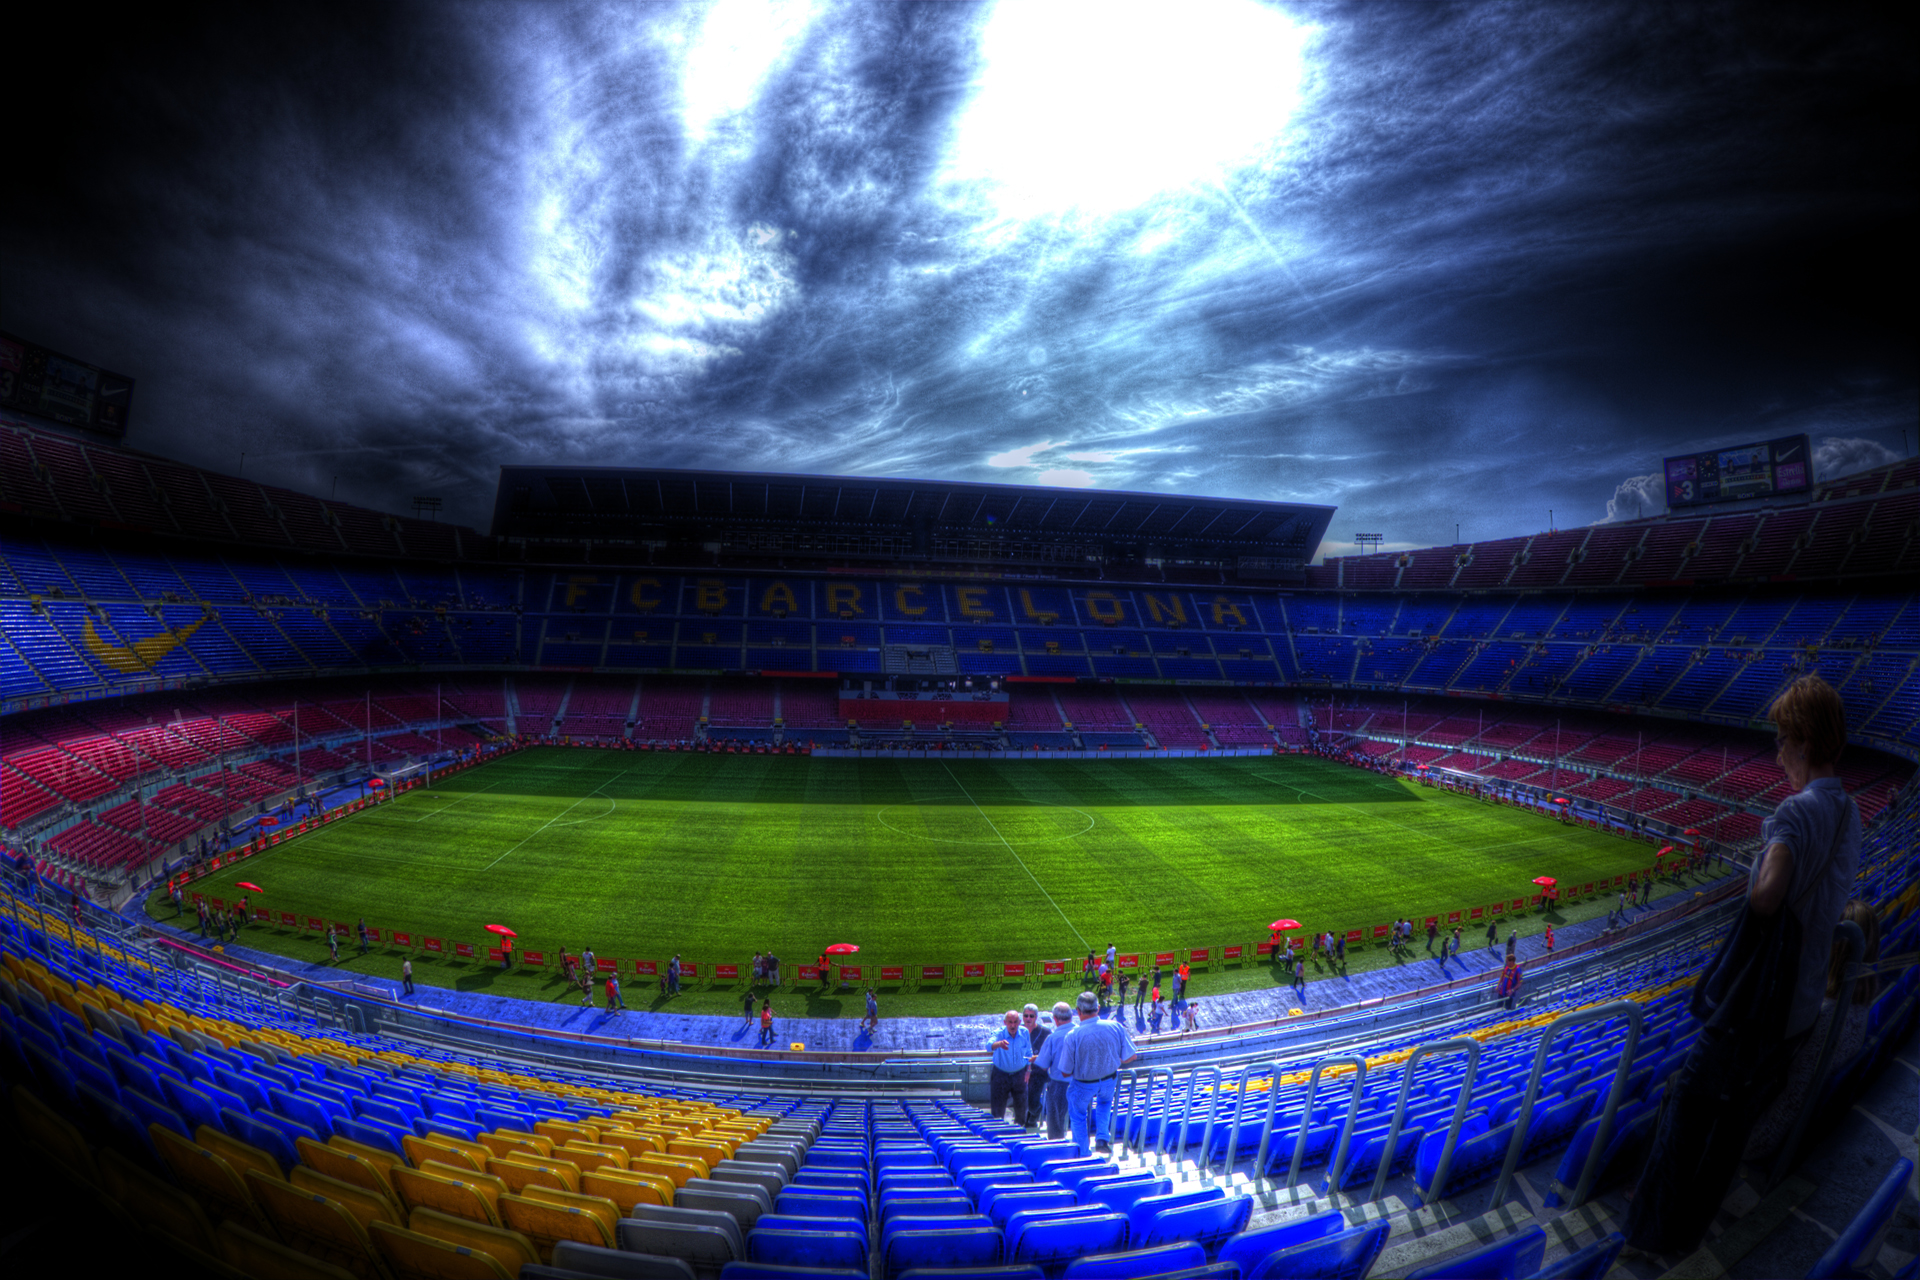 Camp Nou Computer Wallpapers Desktop Backgrounds 1920x1280 Id 324025 1920x1280